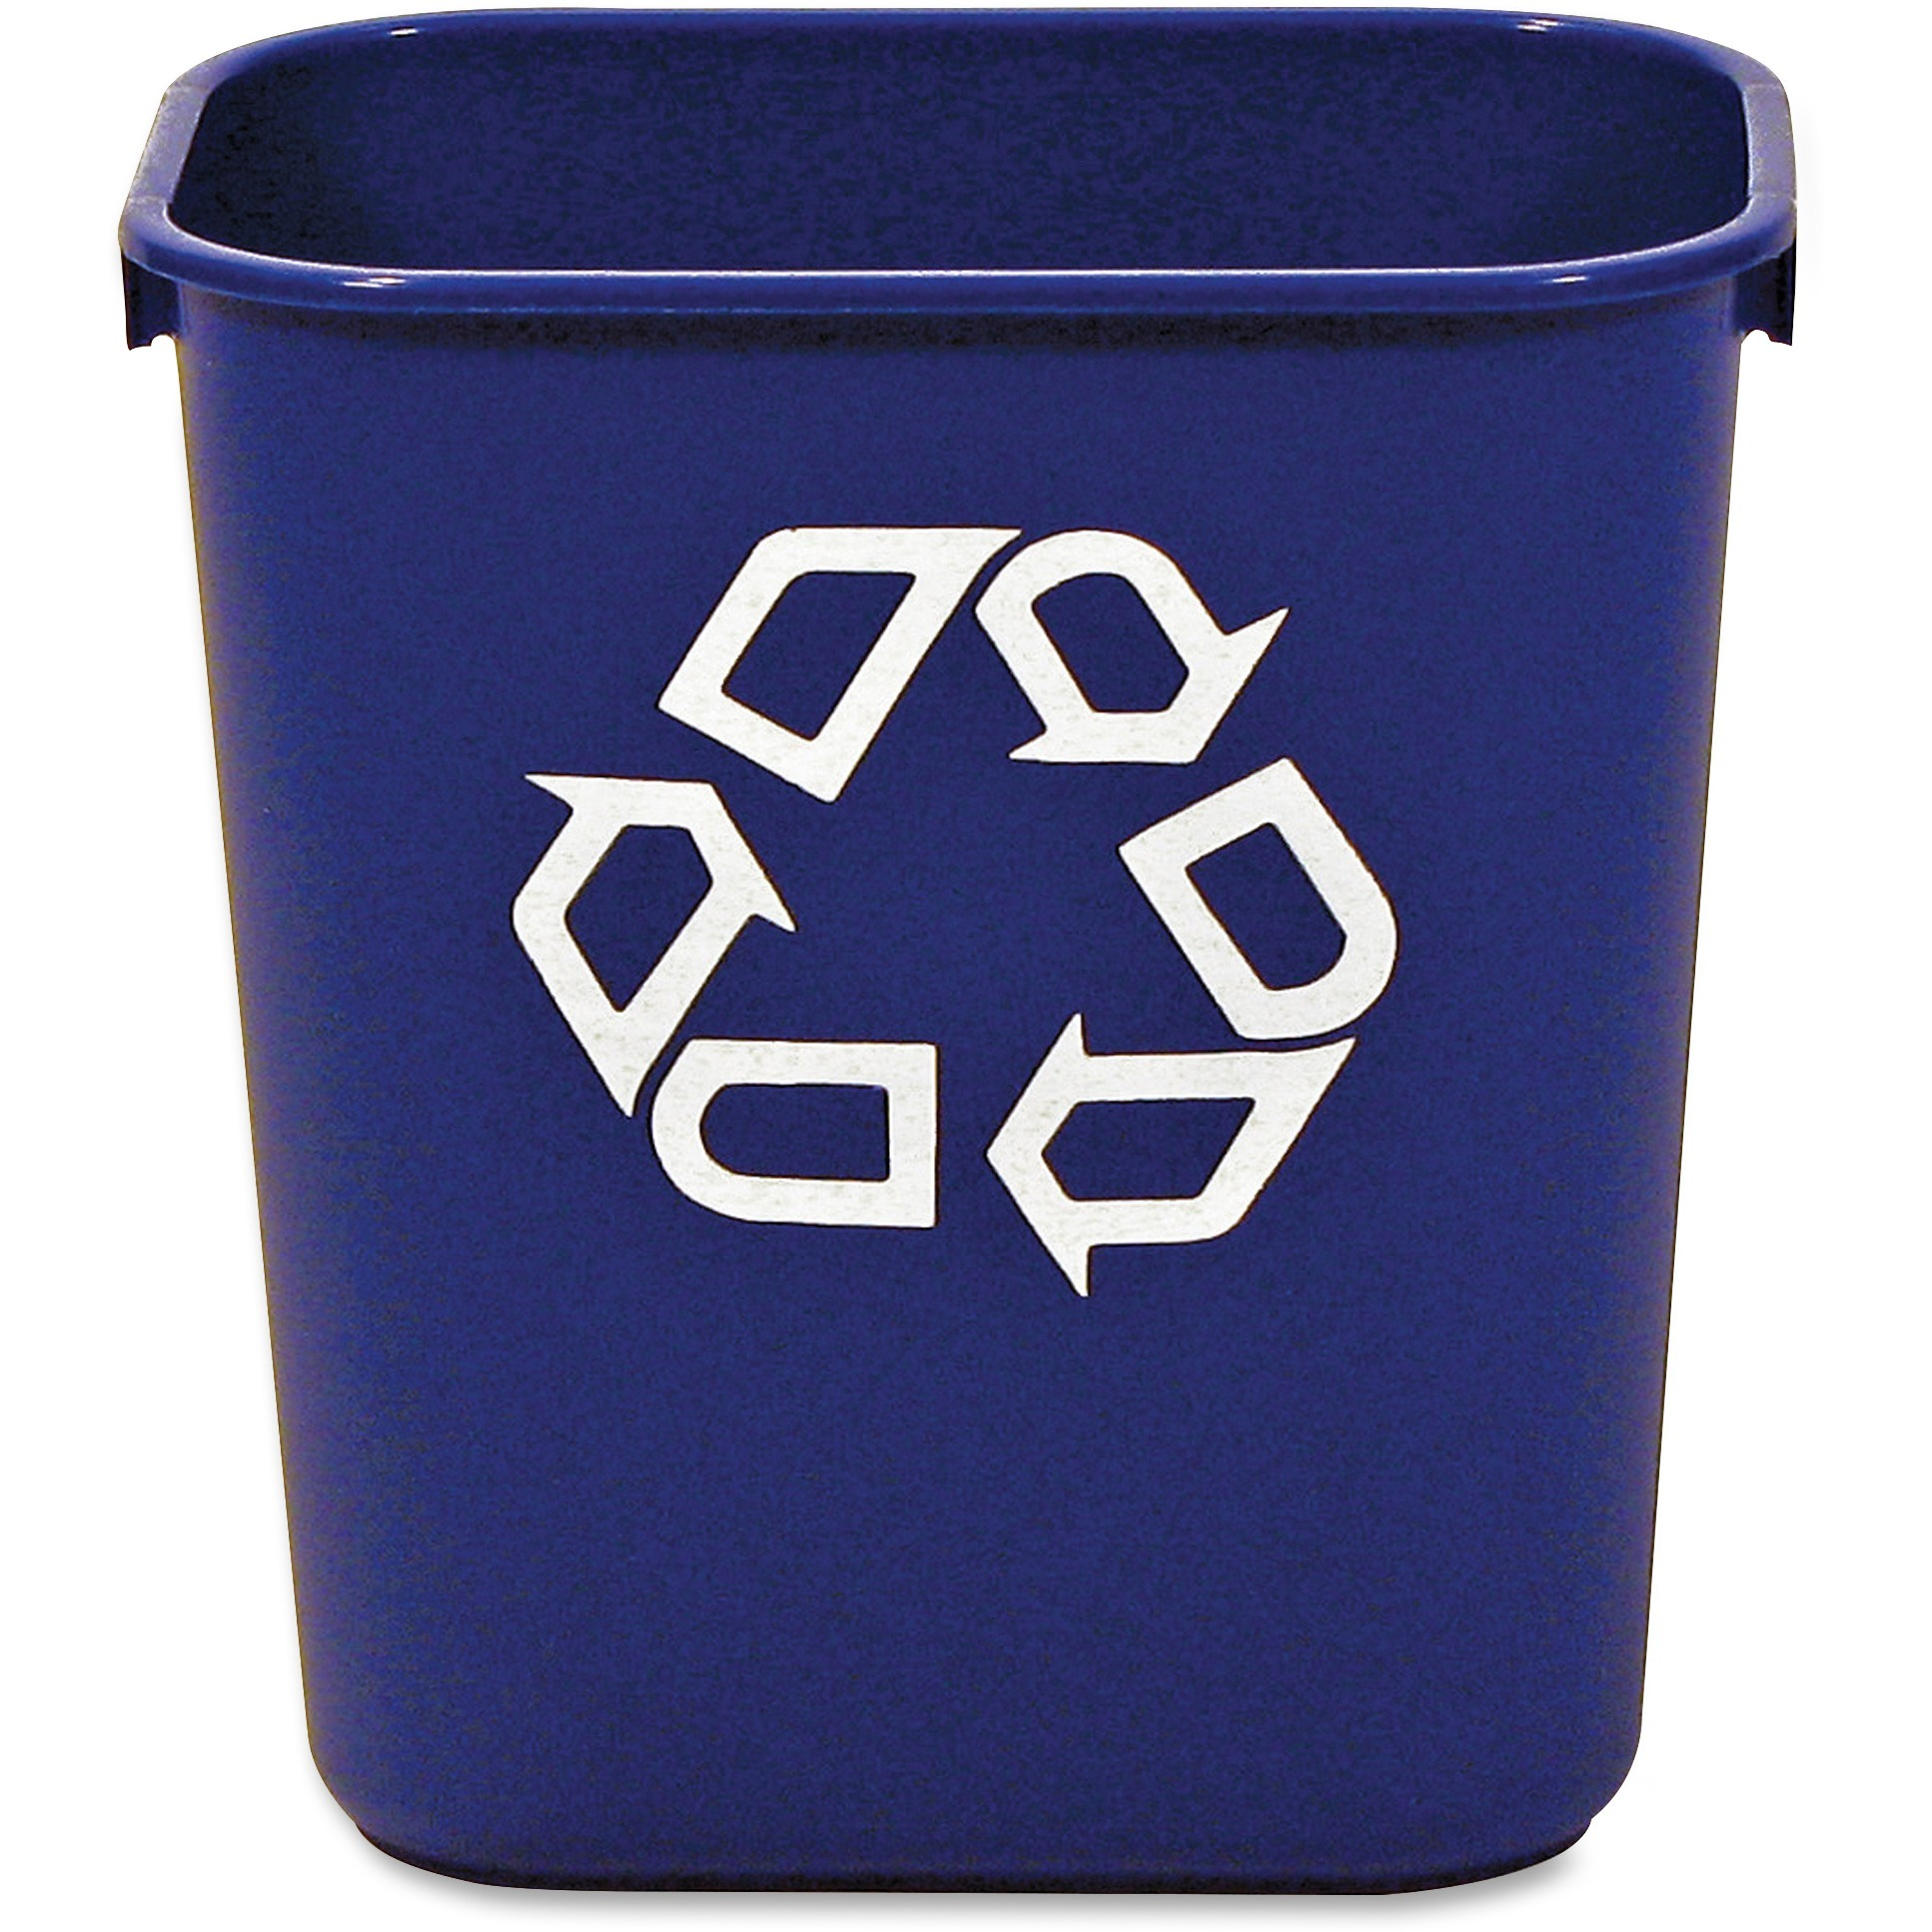 Rubbermaid Commercial, RCP295573BE, Blue Deskside Recycling Container, 1, Blue